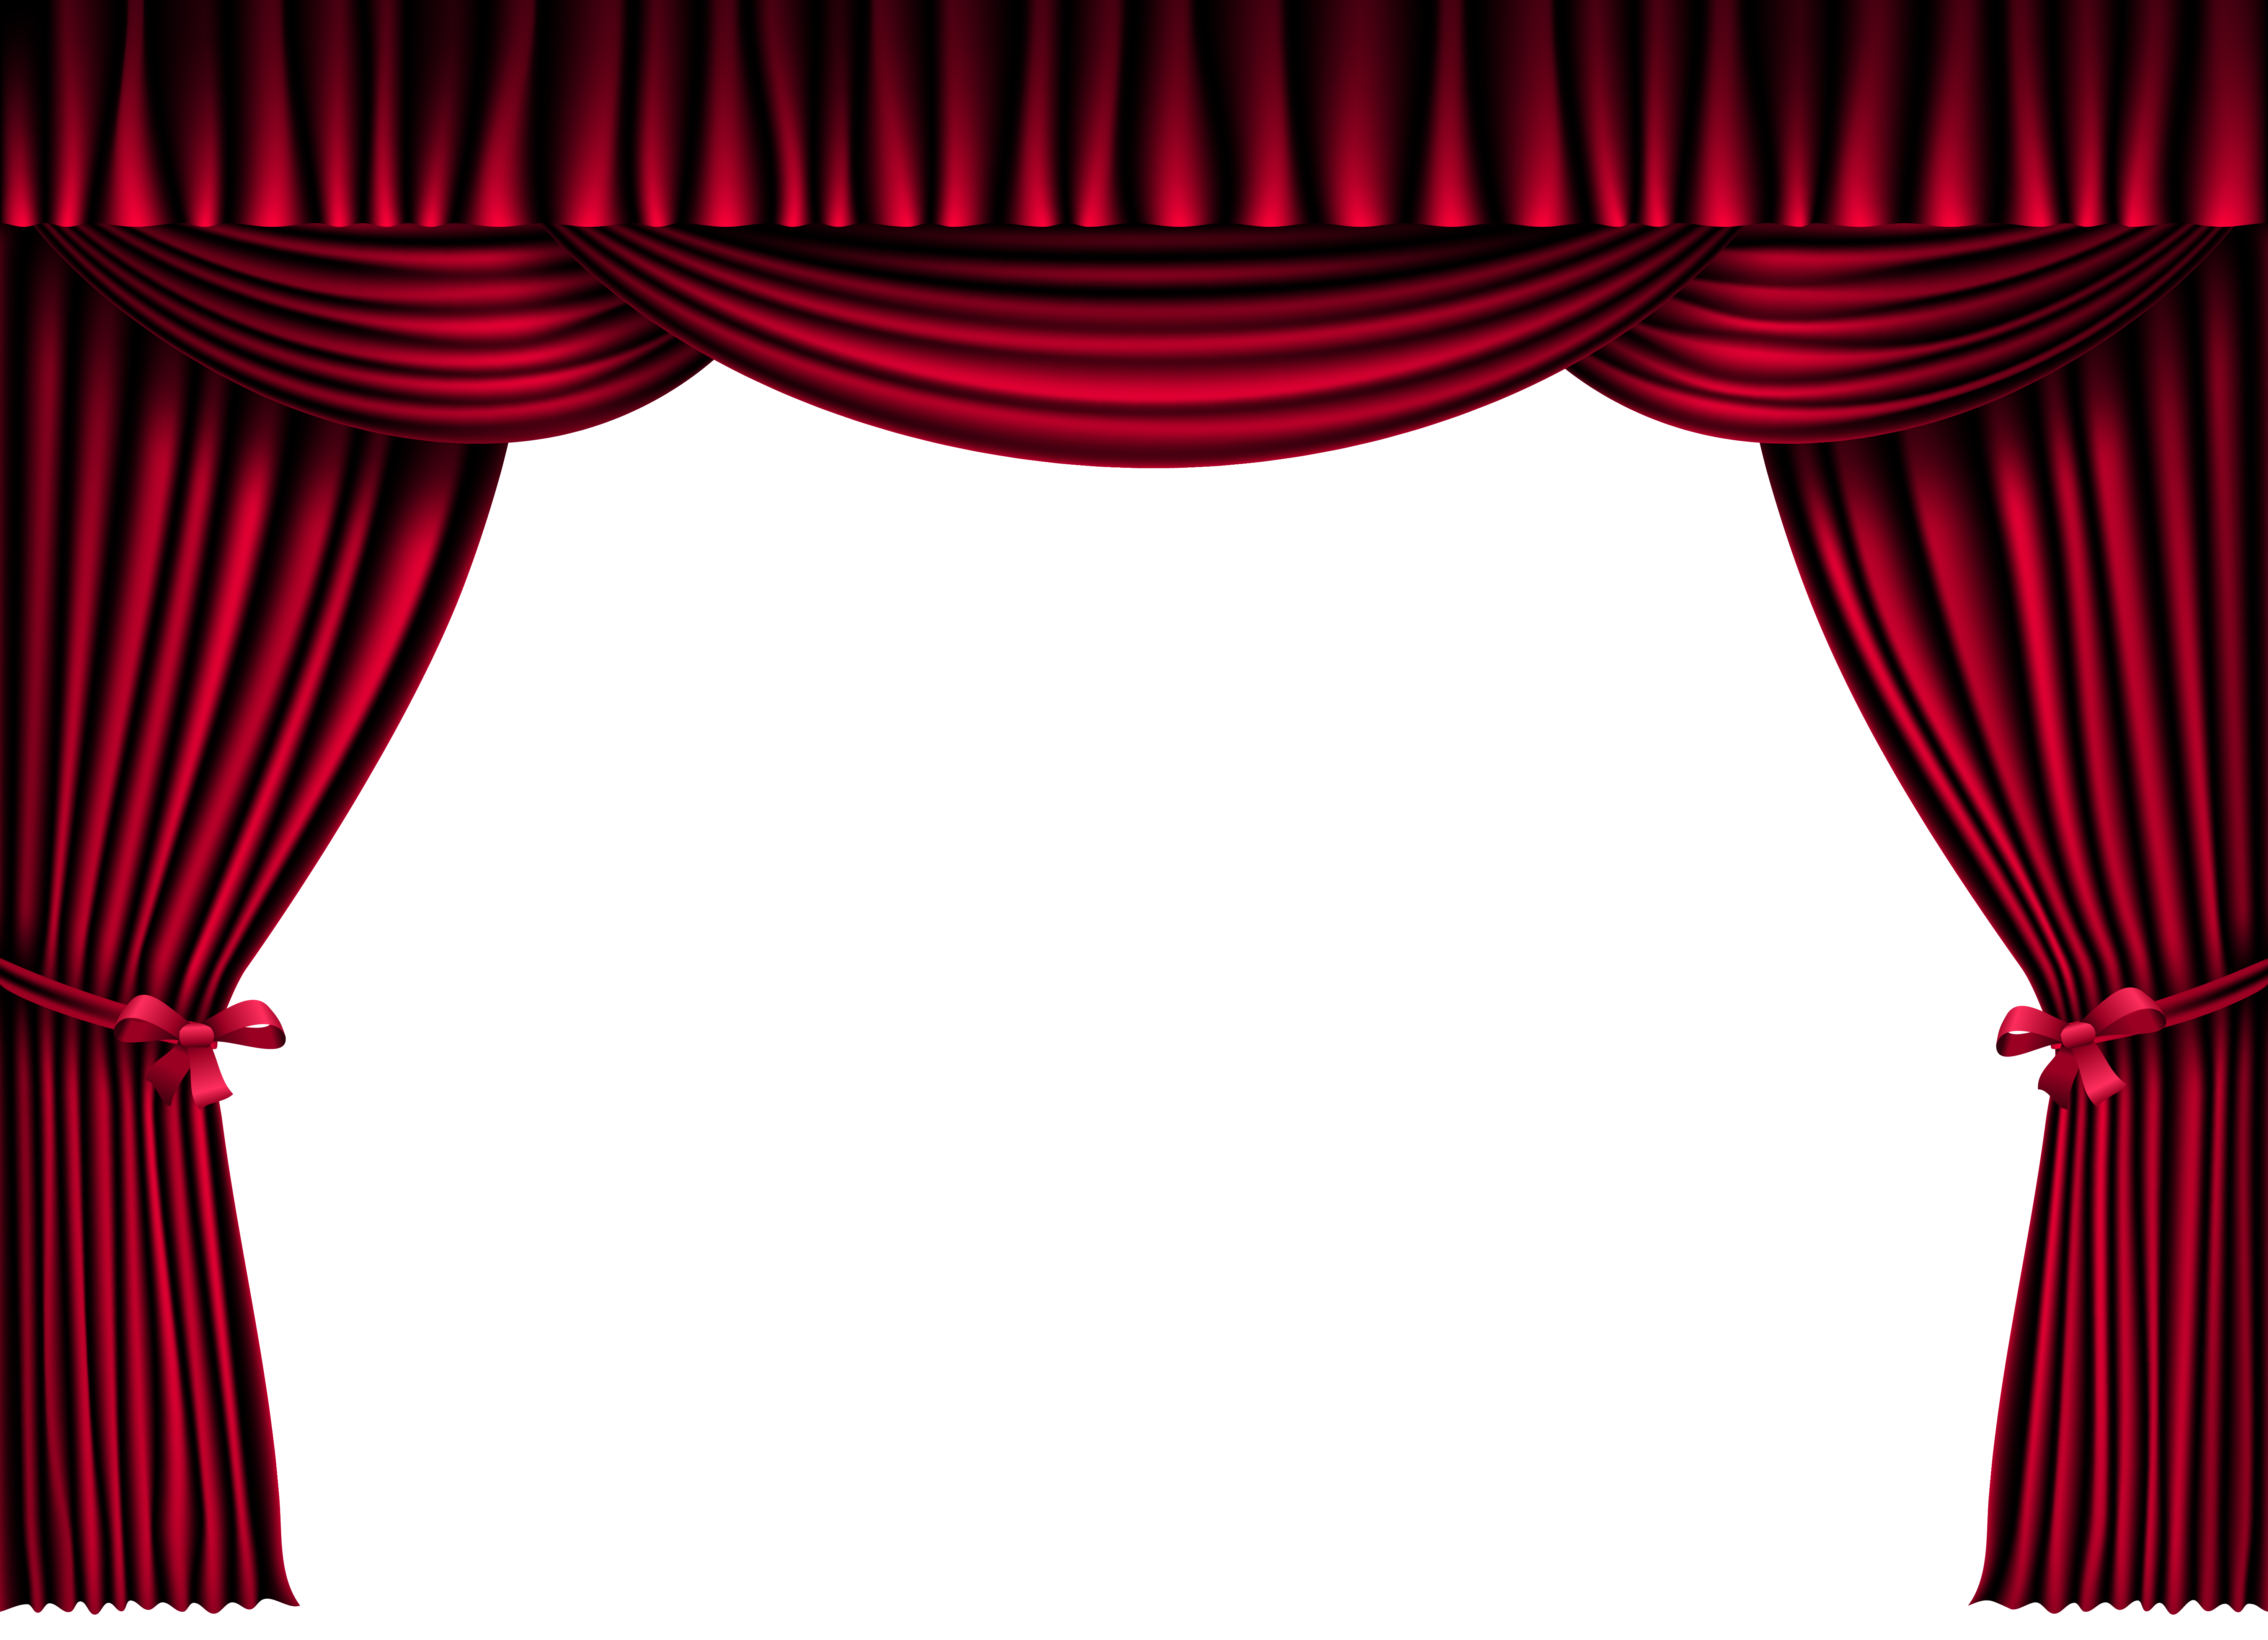 Brown stage curtains png. Red clipart image gallery